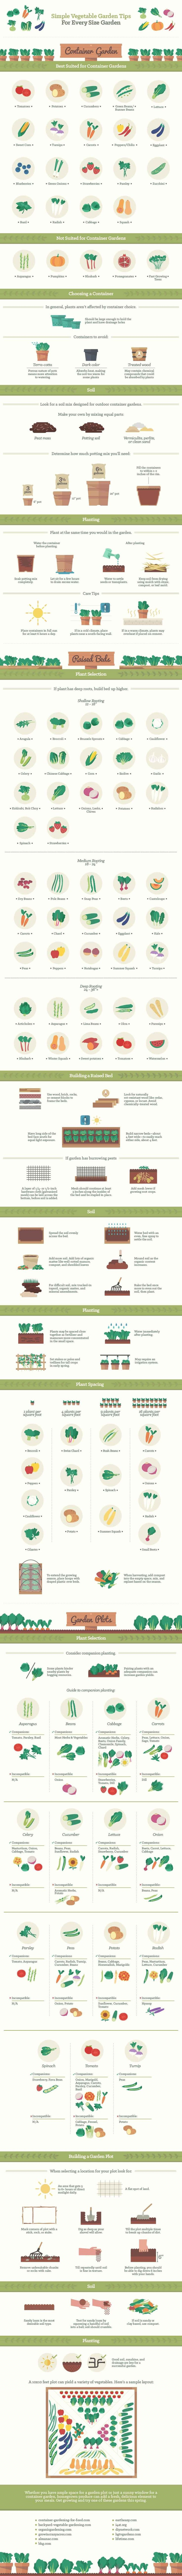 Container Gardening Tips For Homeasteders | How To Plant In A Small Space - Gardening Tips and Tricks by Pioneer Settler at https://homesteading.com/container-gardening/